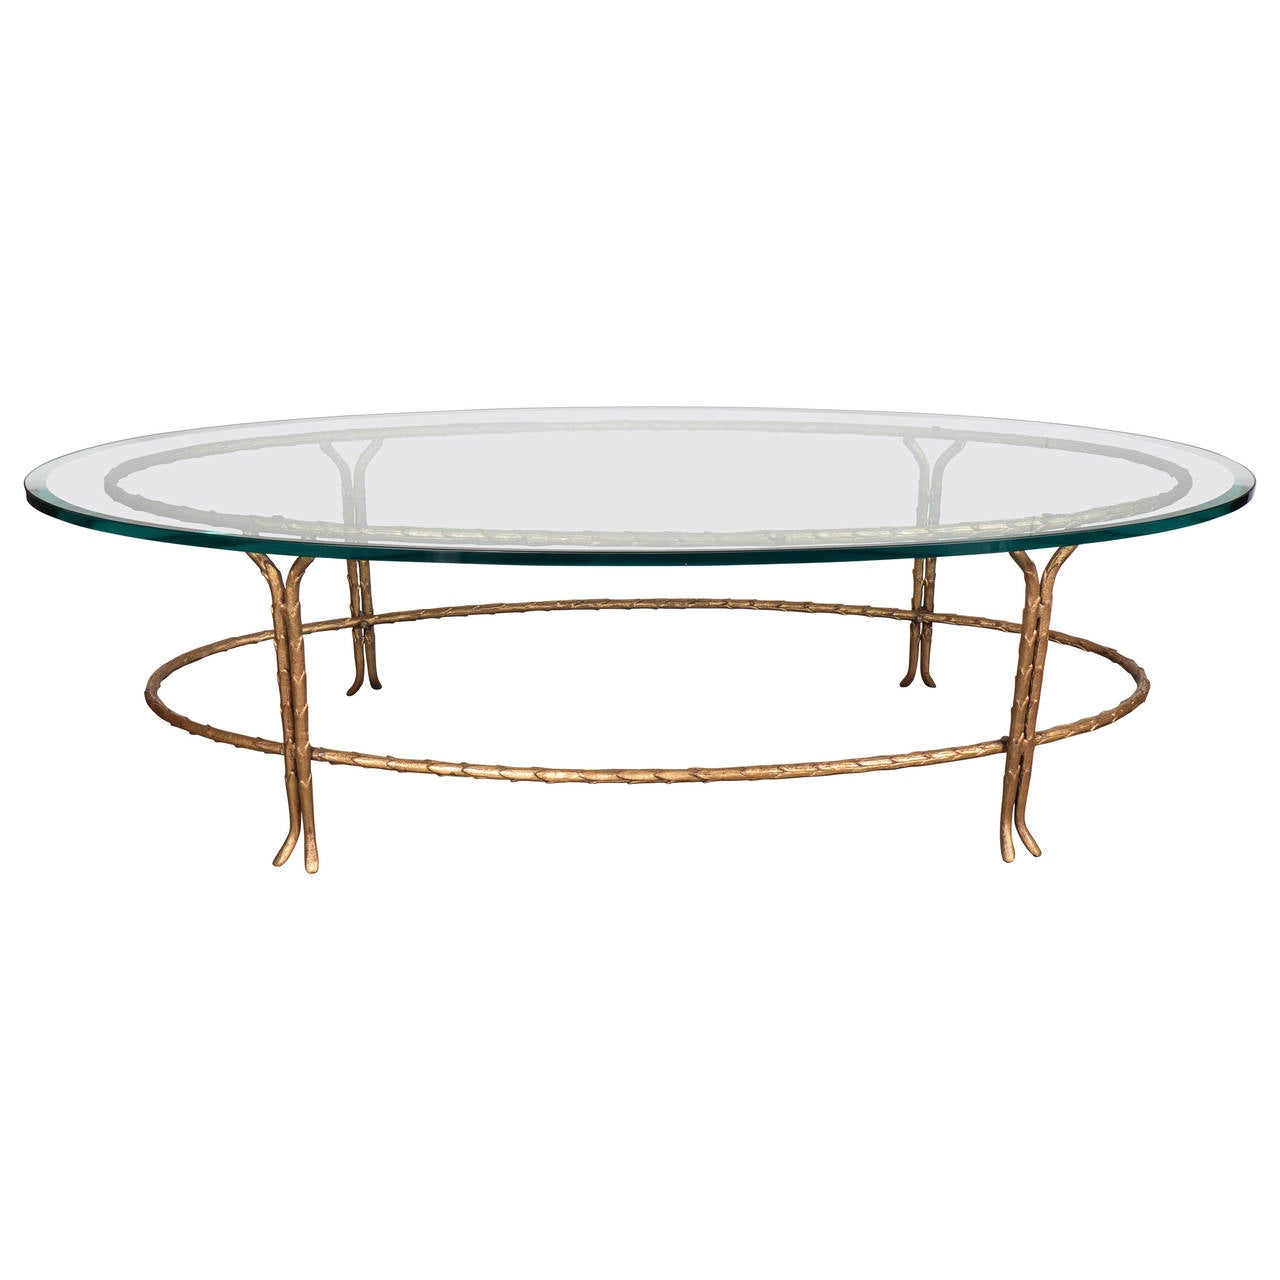 Elegant Bagues Gilt Bronze Oval Cocktail Table With Beveled Glass Top At 1stdibs